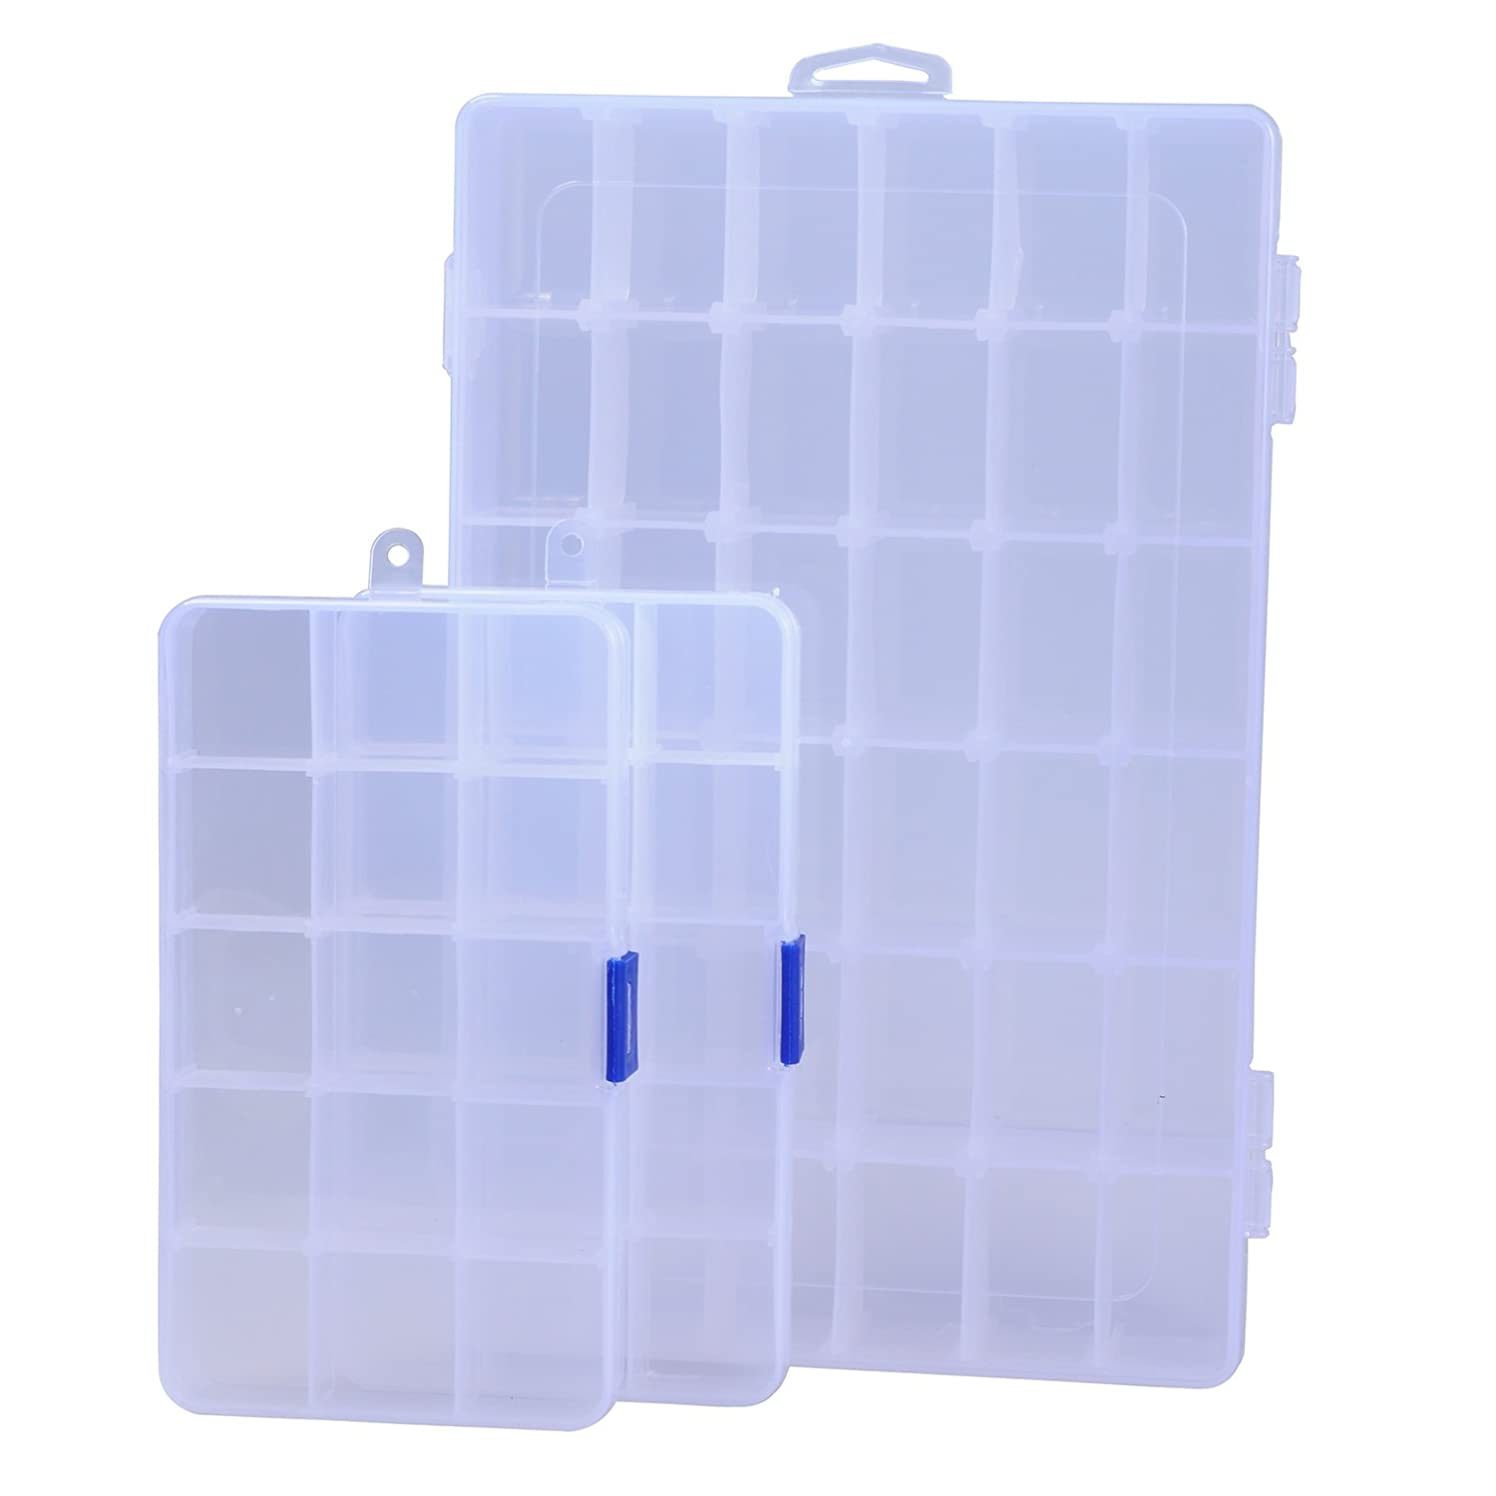 ECROCY Plastic Jewelry Box Organizer, Storage Container with Adjustable Divider Removable Grid Compartment - 3 Pack(1pc 36 Grids and 2pc 15 Grids)